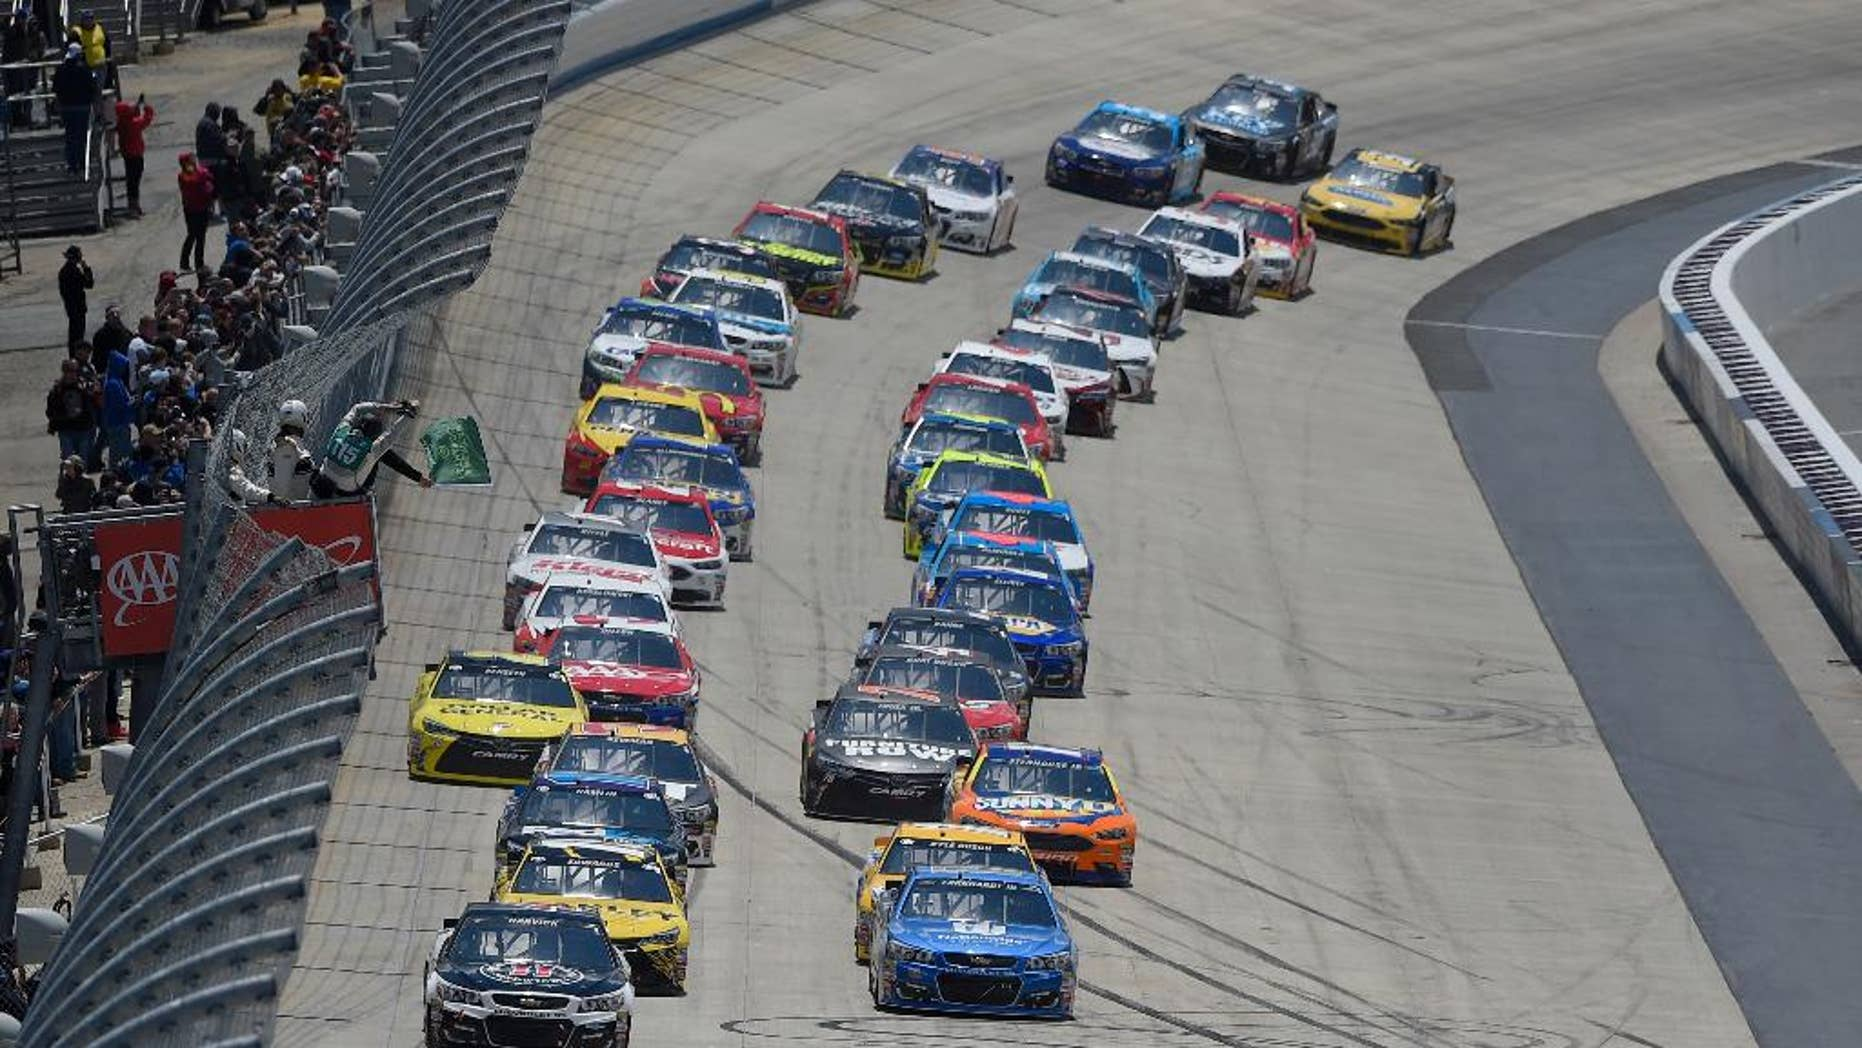 Kevin Harvick, front left, and Dale Earnhardt Jr., front right, lead the field to take the green flag to start the NASCAR Sprint Cup series auto race, Sunday, May 15, 2016, at Dover International Speedway in Dover, Del. (AP Photo/Nick Wass)